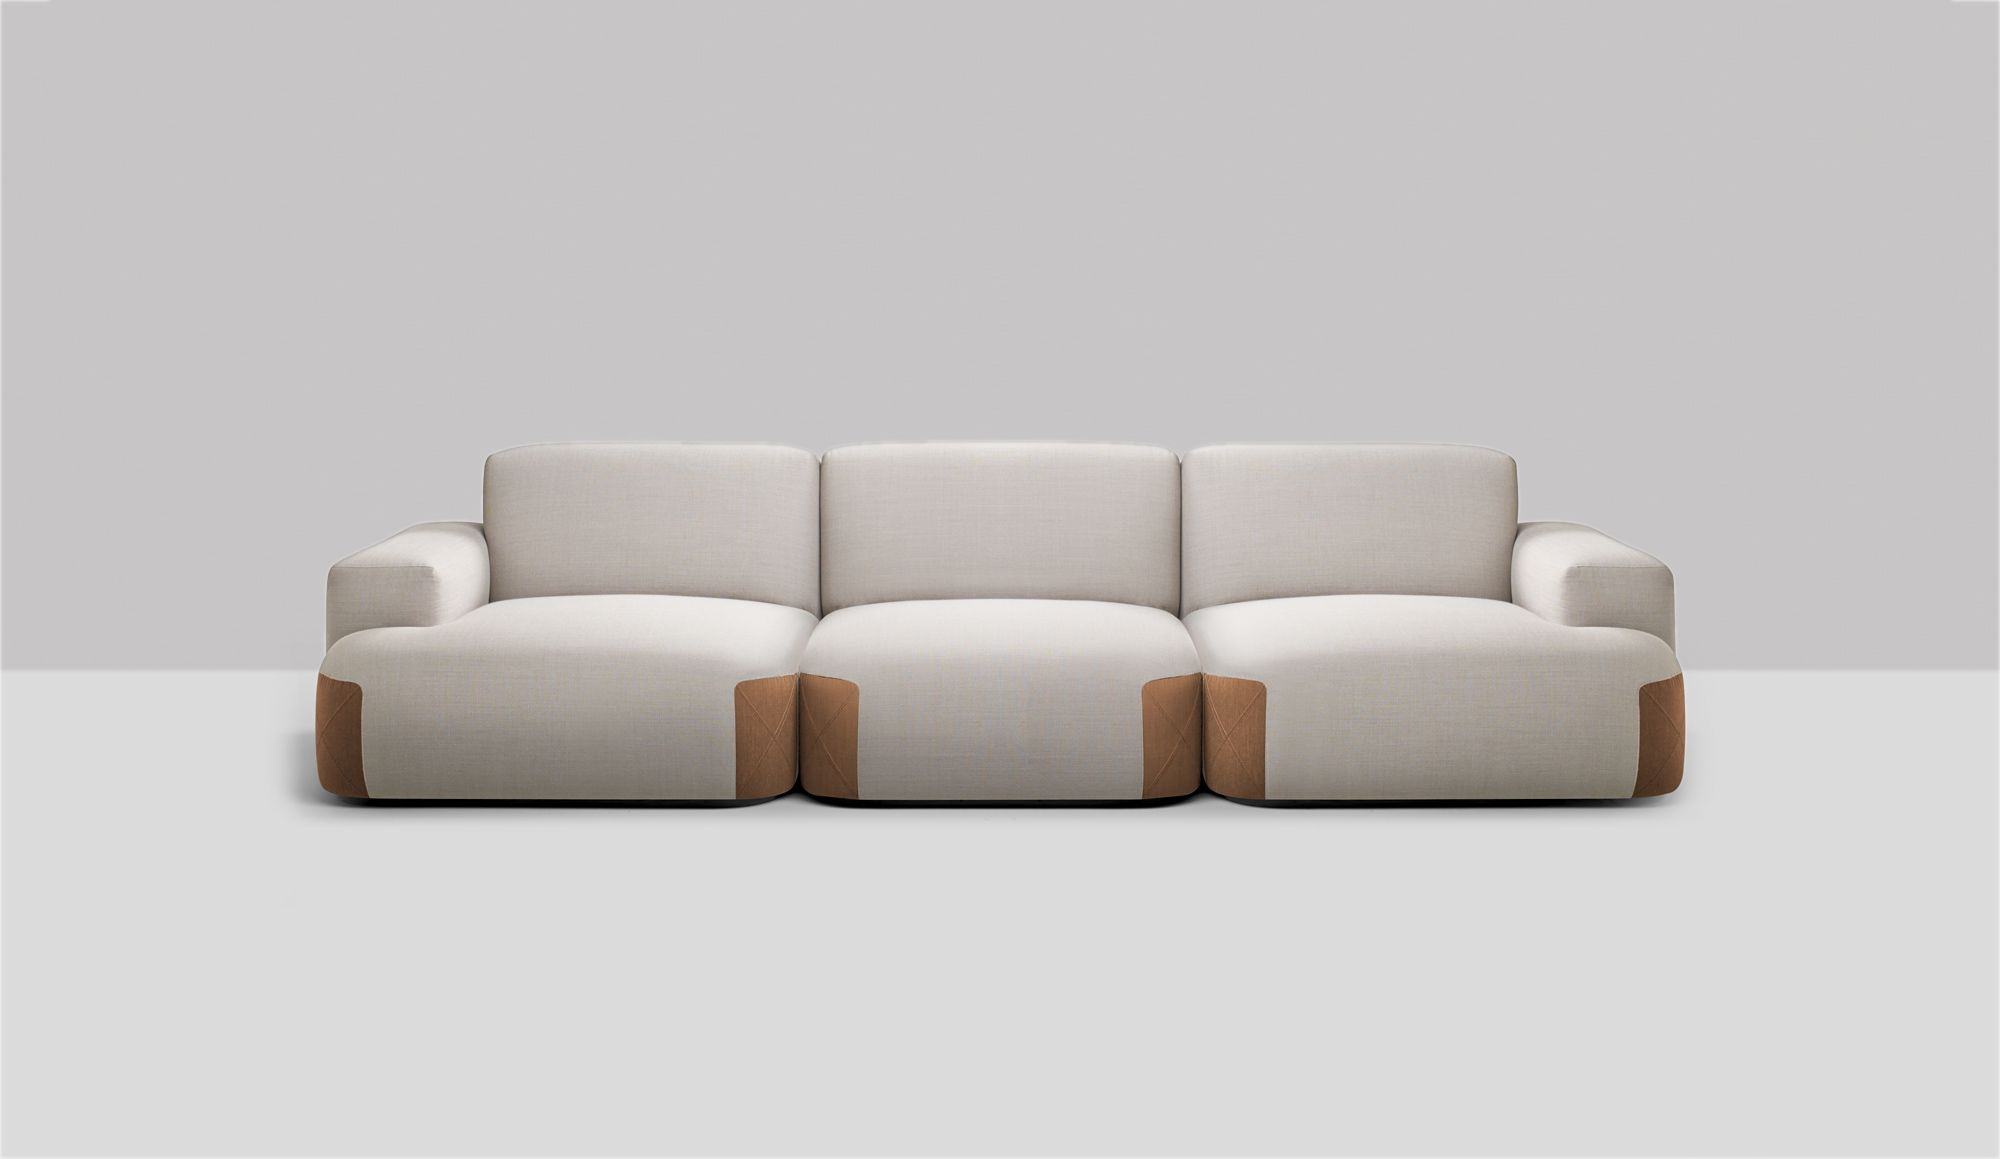 Pedas Bosc Contemporary Sofas And Armchairs Made In Landes